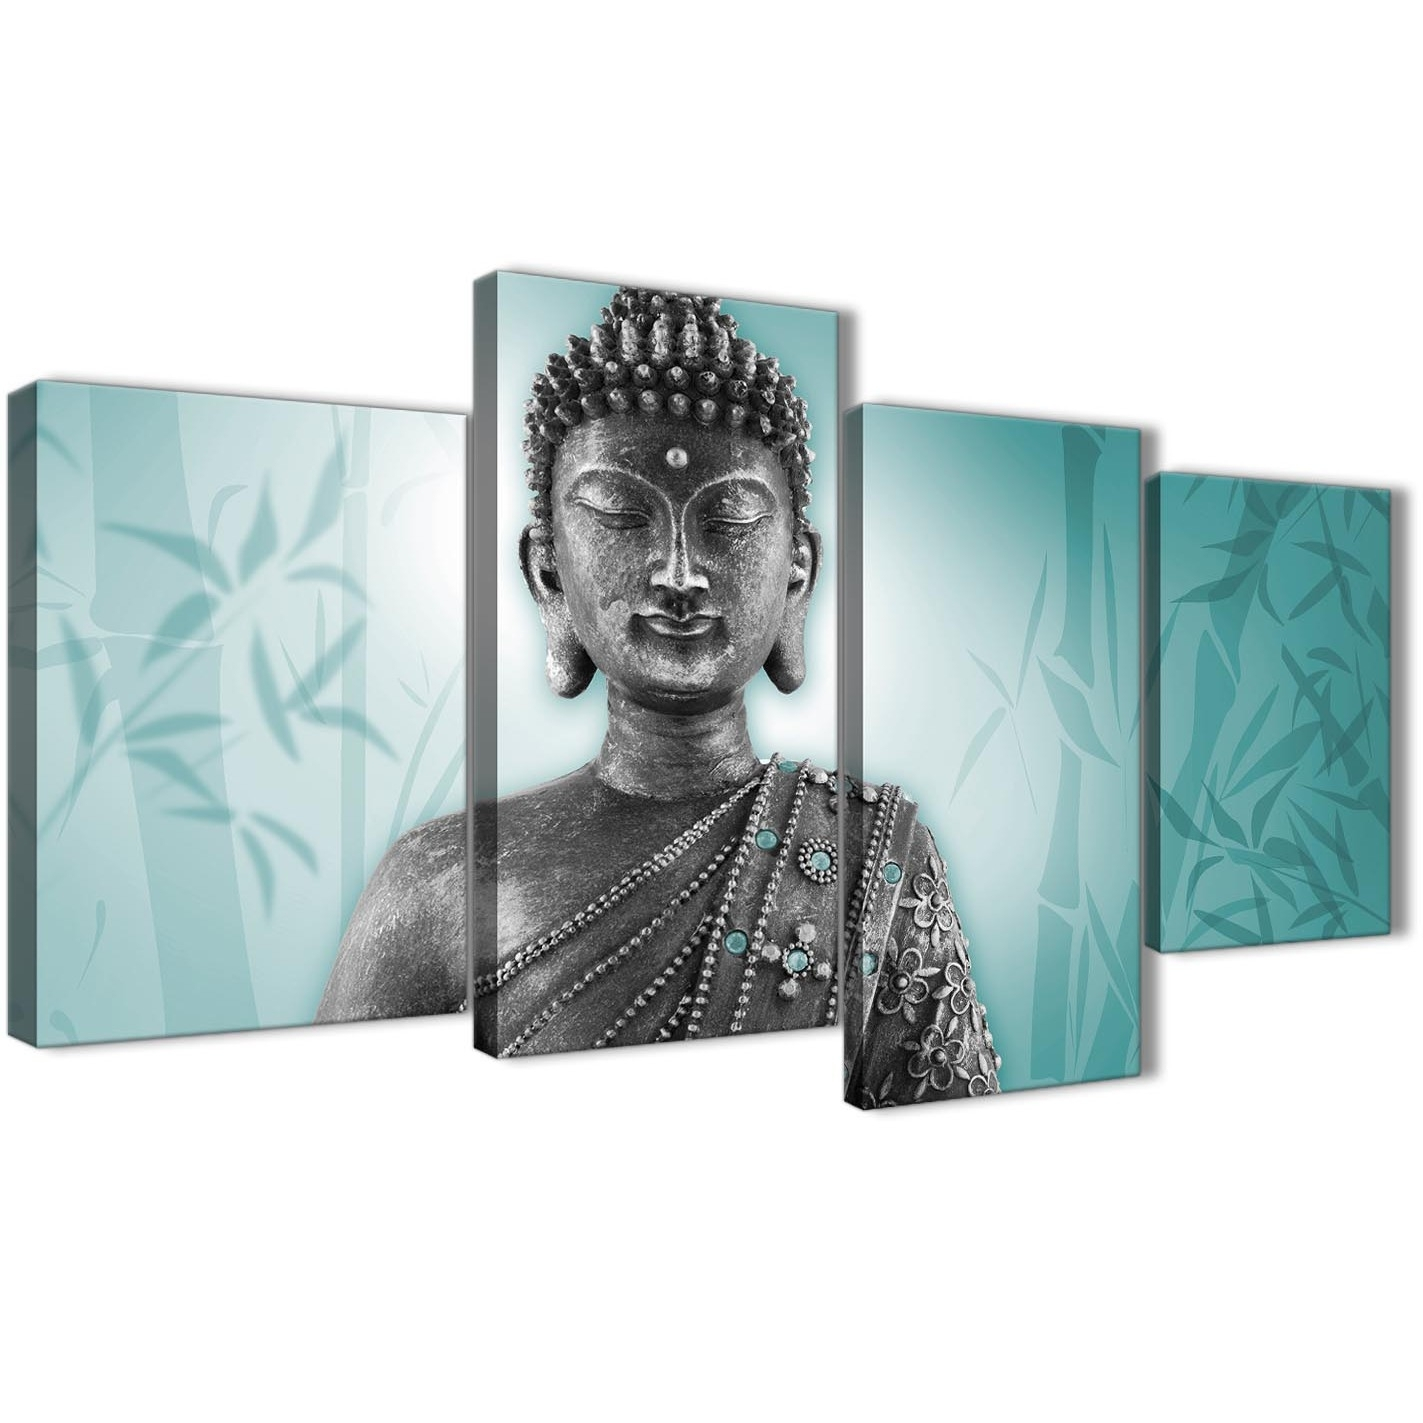 Large Teal And Grey Silver Canvas Art Prints Of Buddha - Split 4 Set pertaining to Oversized Teal Canvas Wall Art (Image 14 of 20)